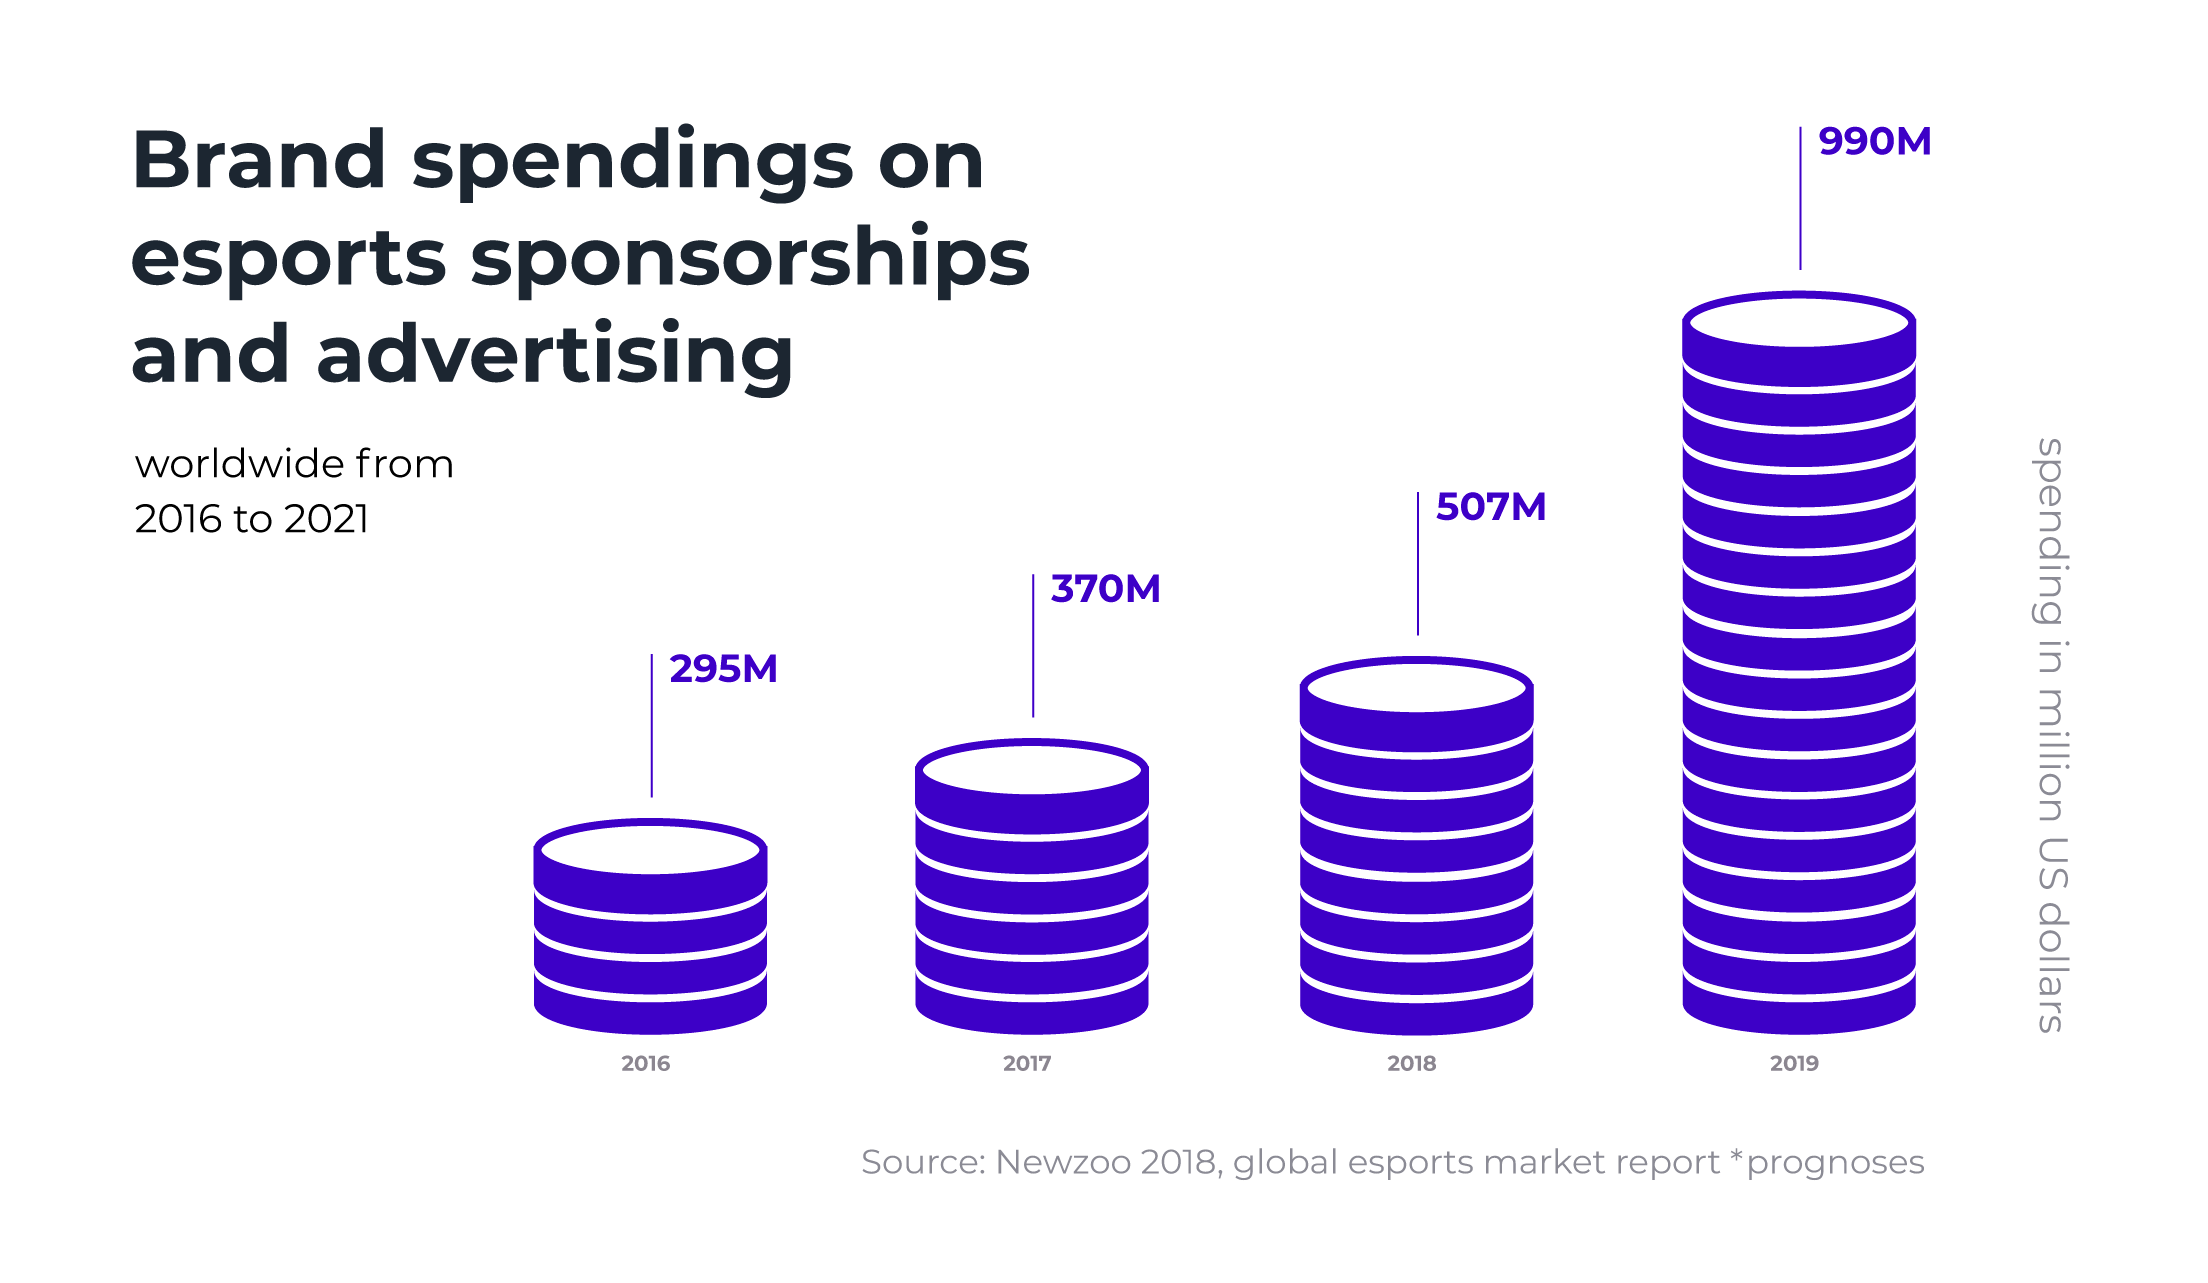 Worldwide brand spendings on e-sports sponsorships and advertising from 2016 to 2021